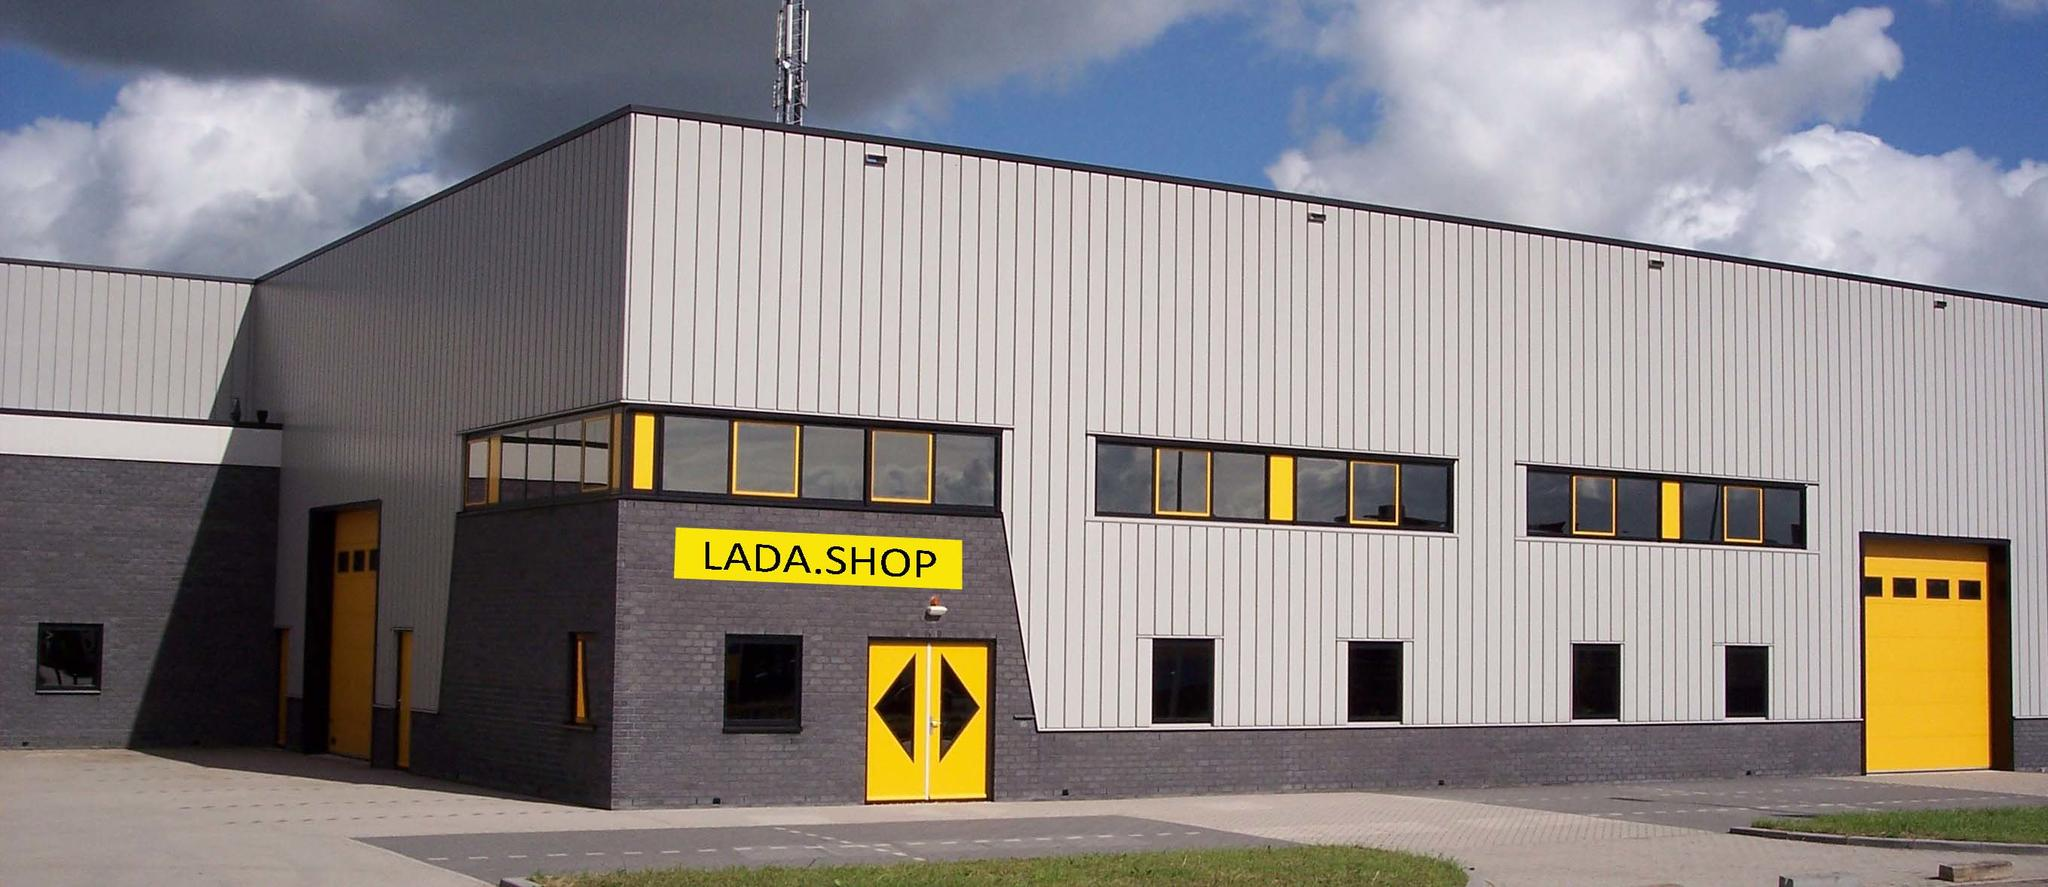 ladashop_warehouse